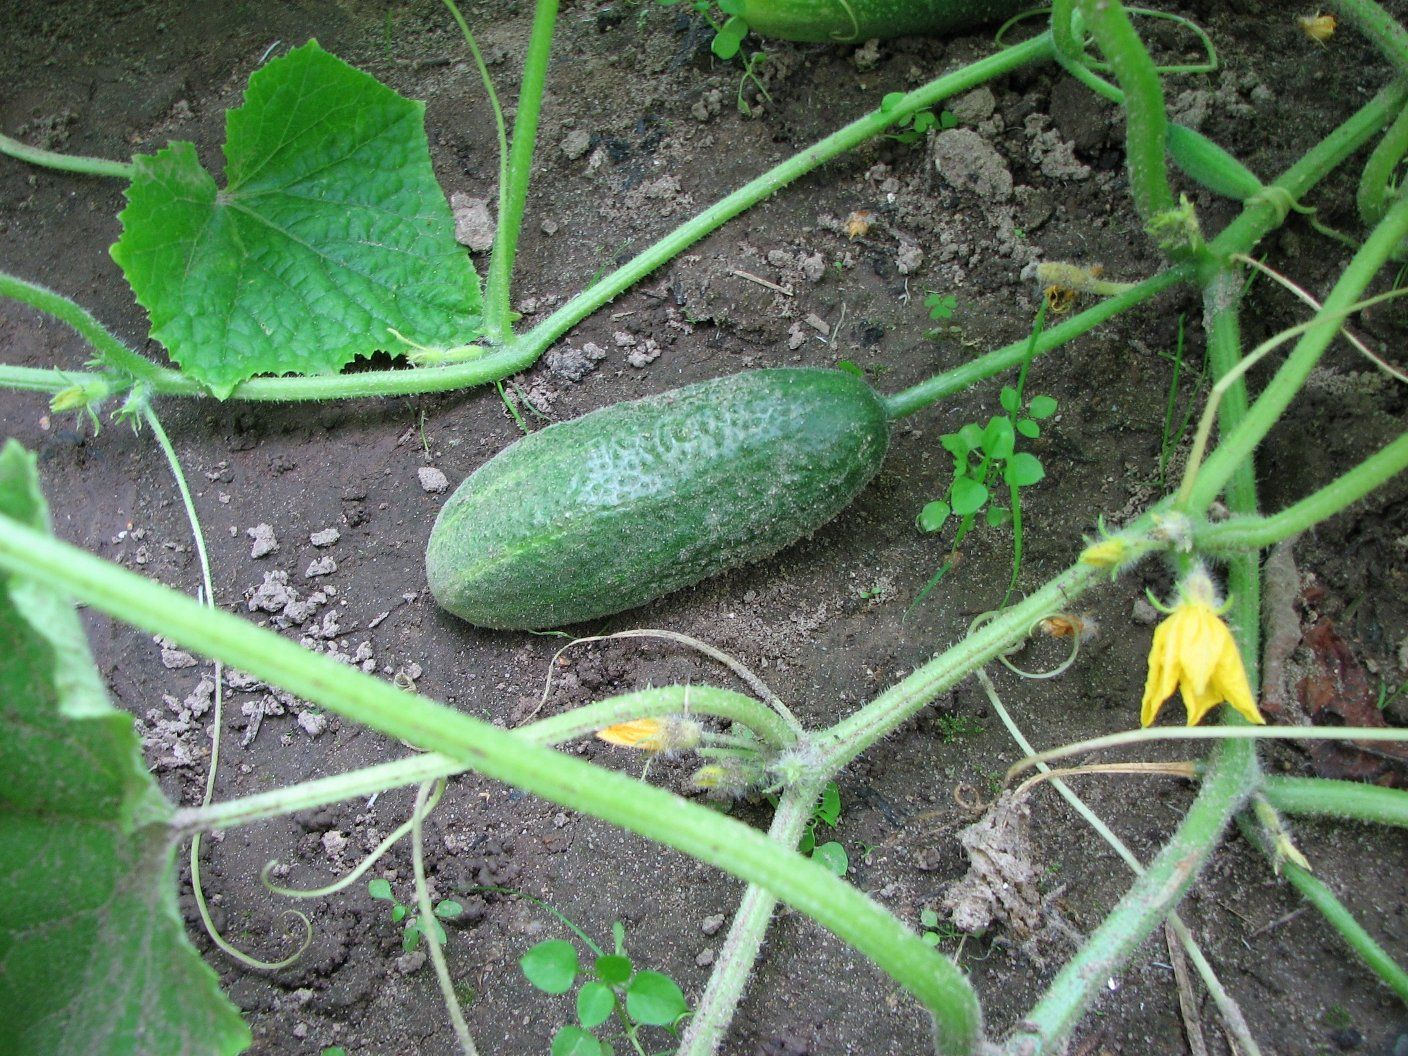 How to Grow Cucumbers in a Home Garden An Illustrated